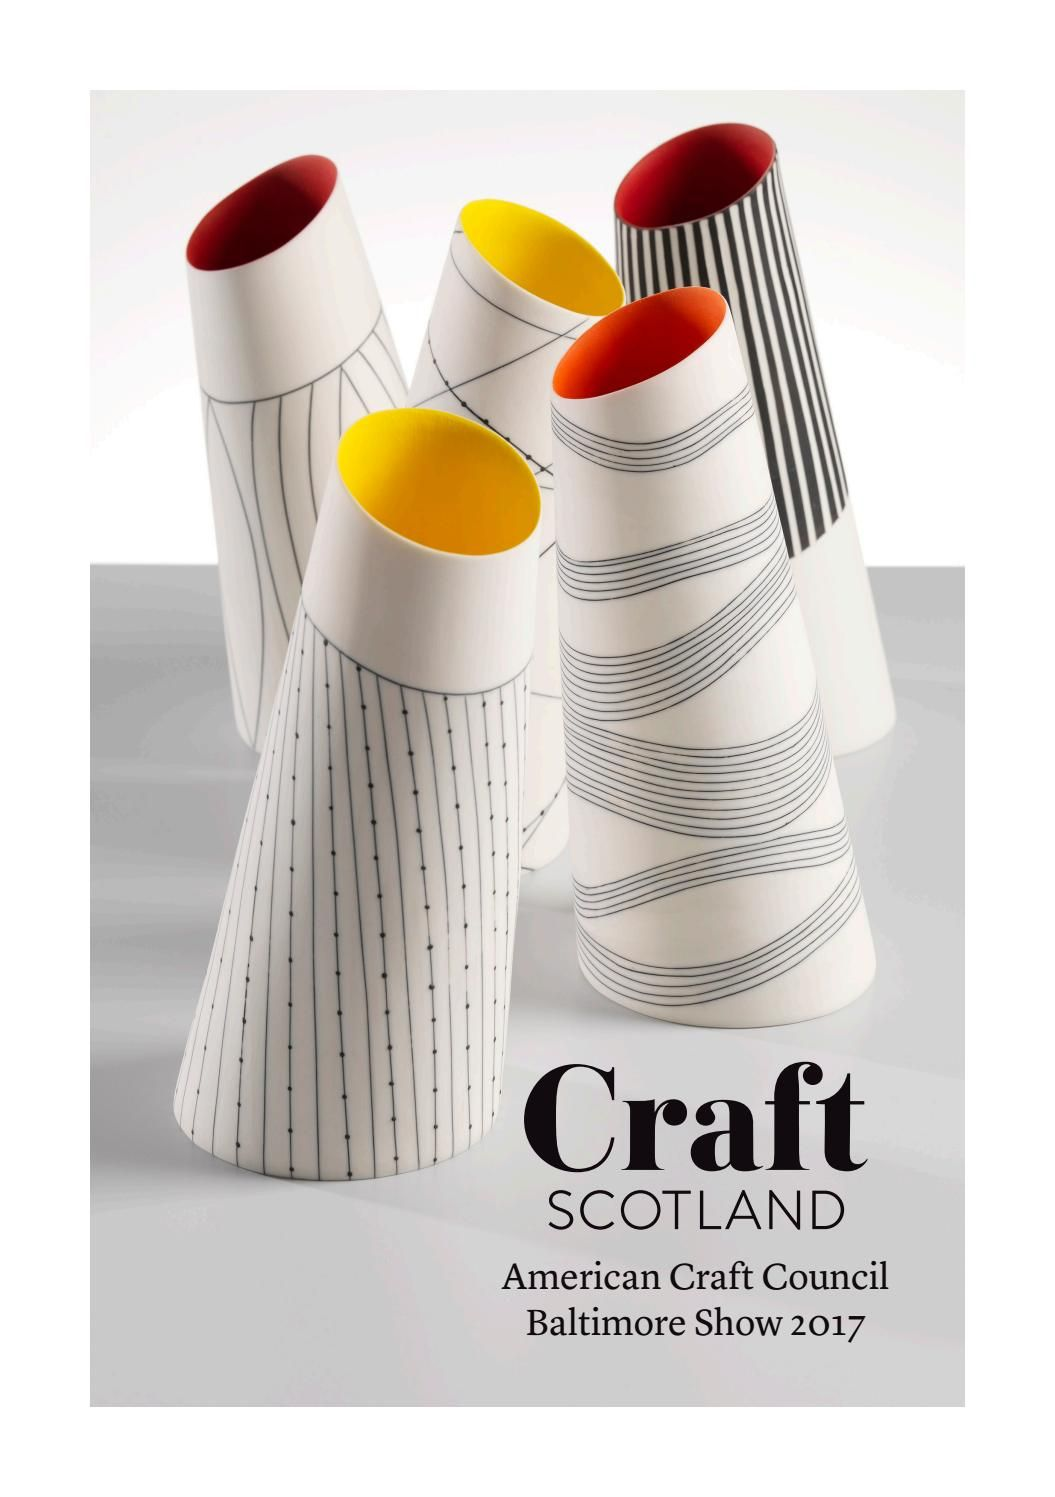 Craft Scotland At The American Craft Council Baltimore Show